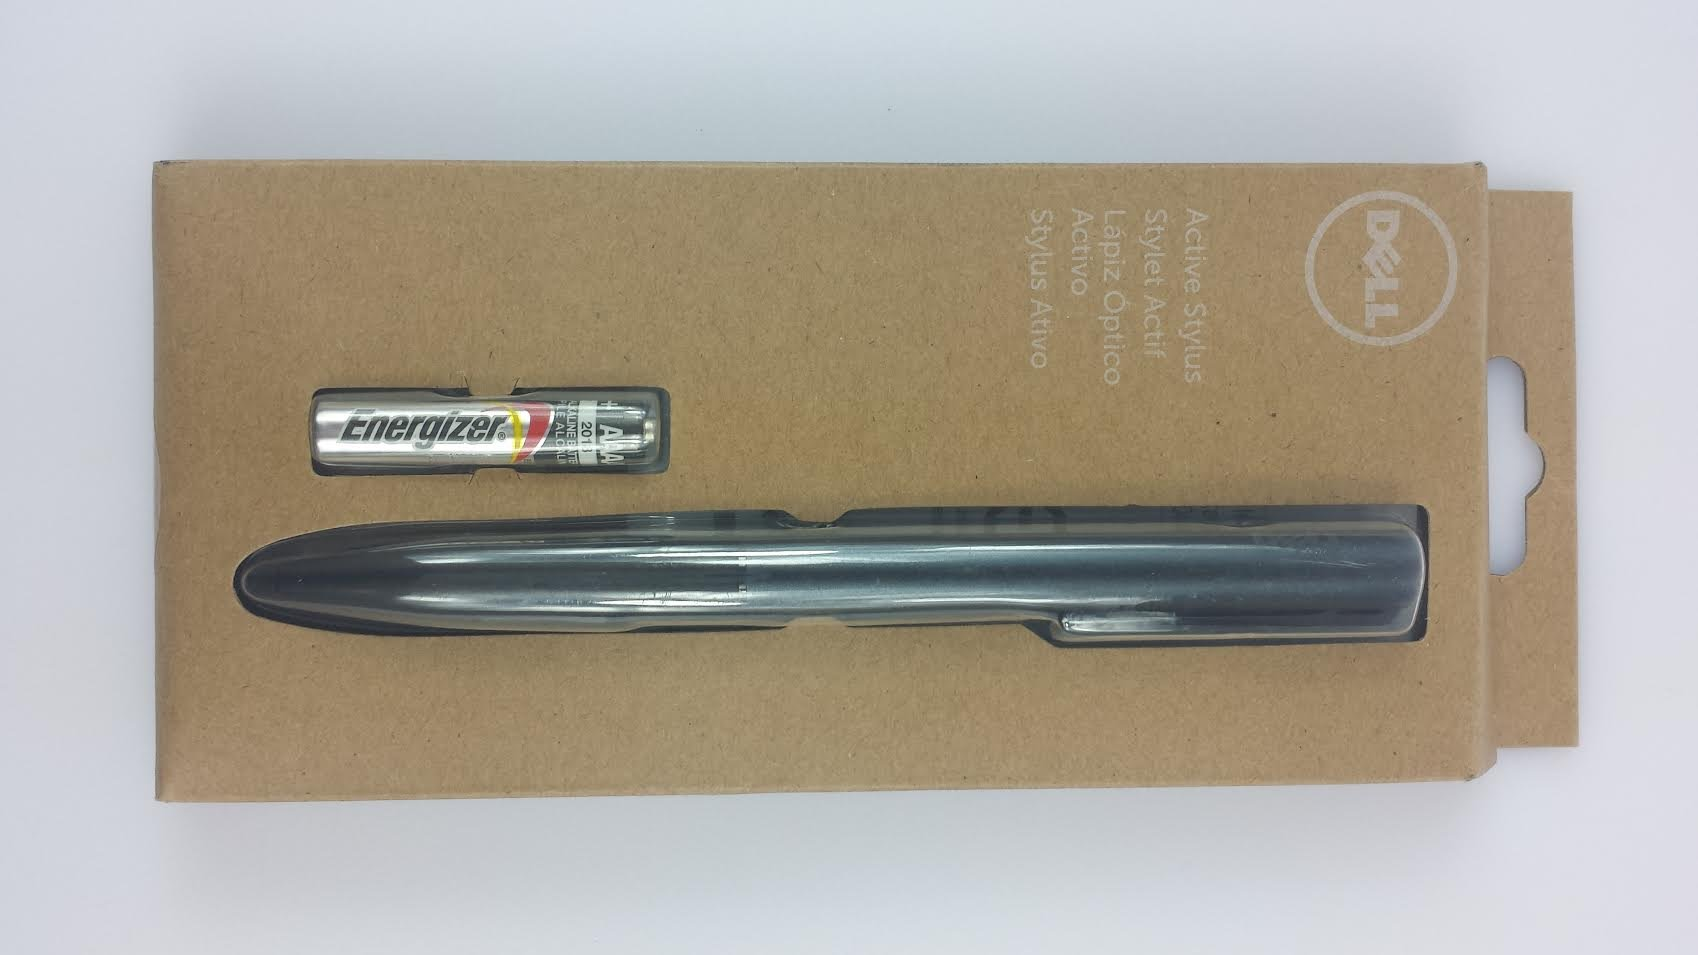 Original Dell Active Stylus Version REV A02 With Battery for Venue 8 11 Pro Windows Tablet